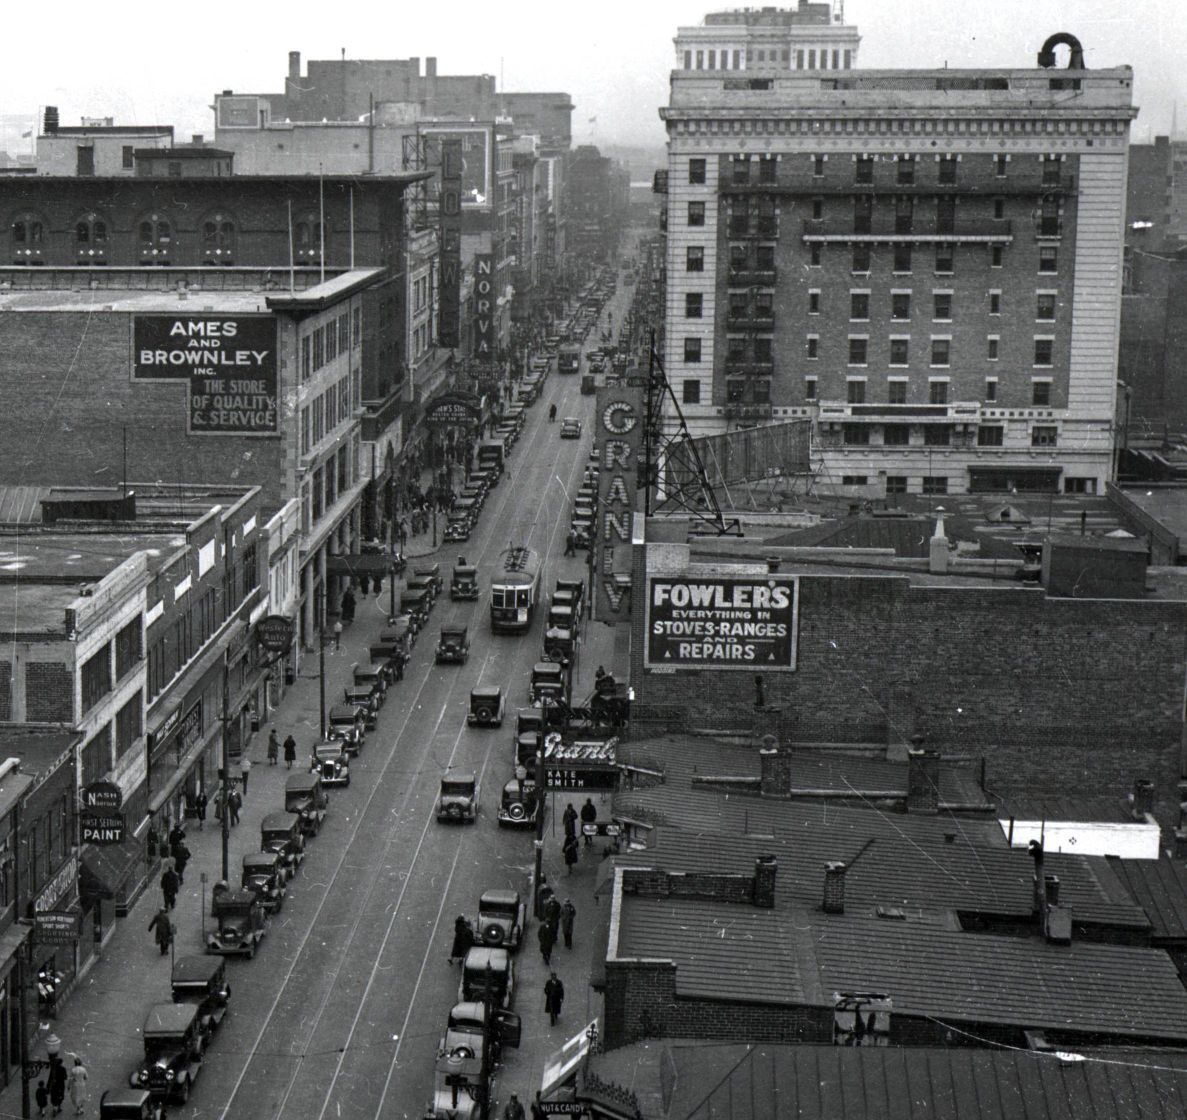 Granby St. March 4, 1933